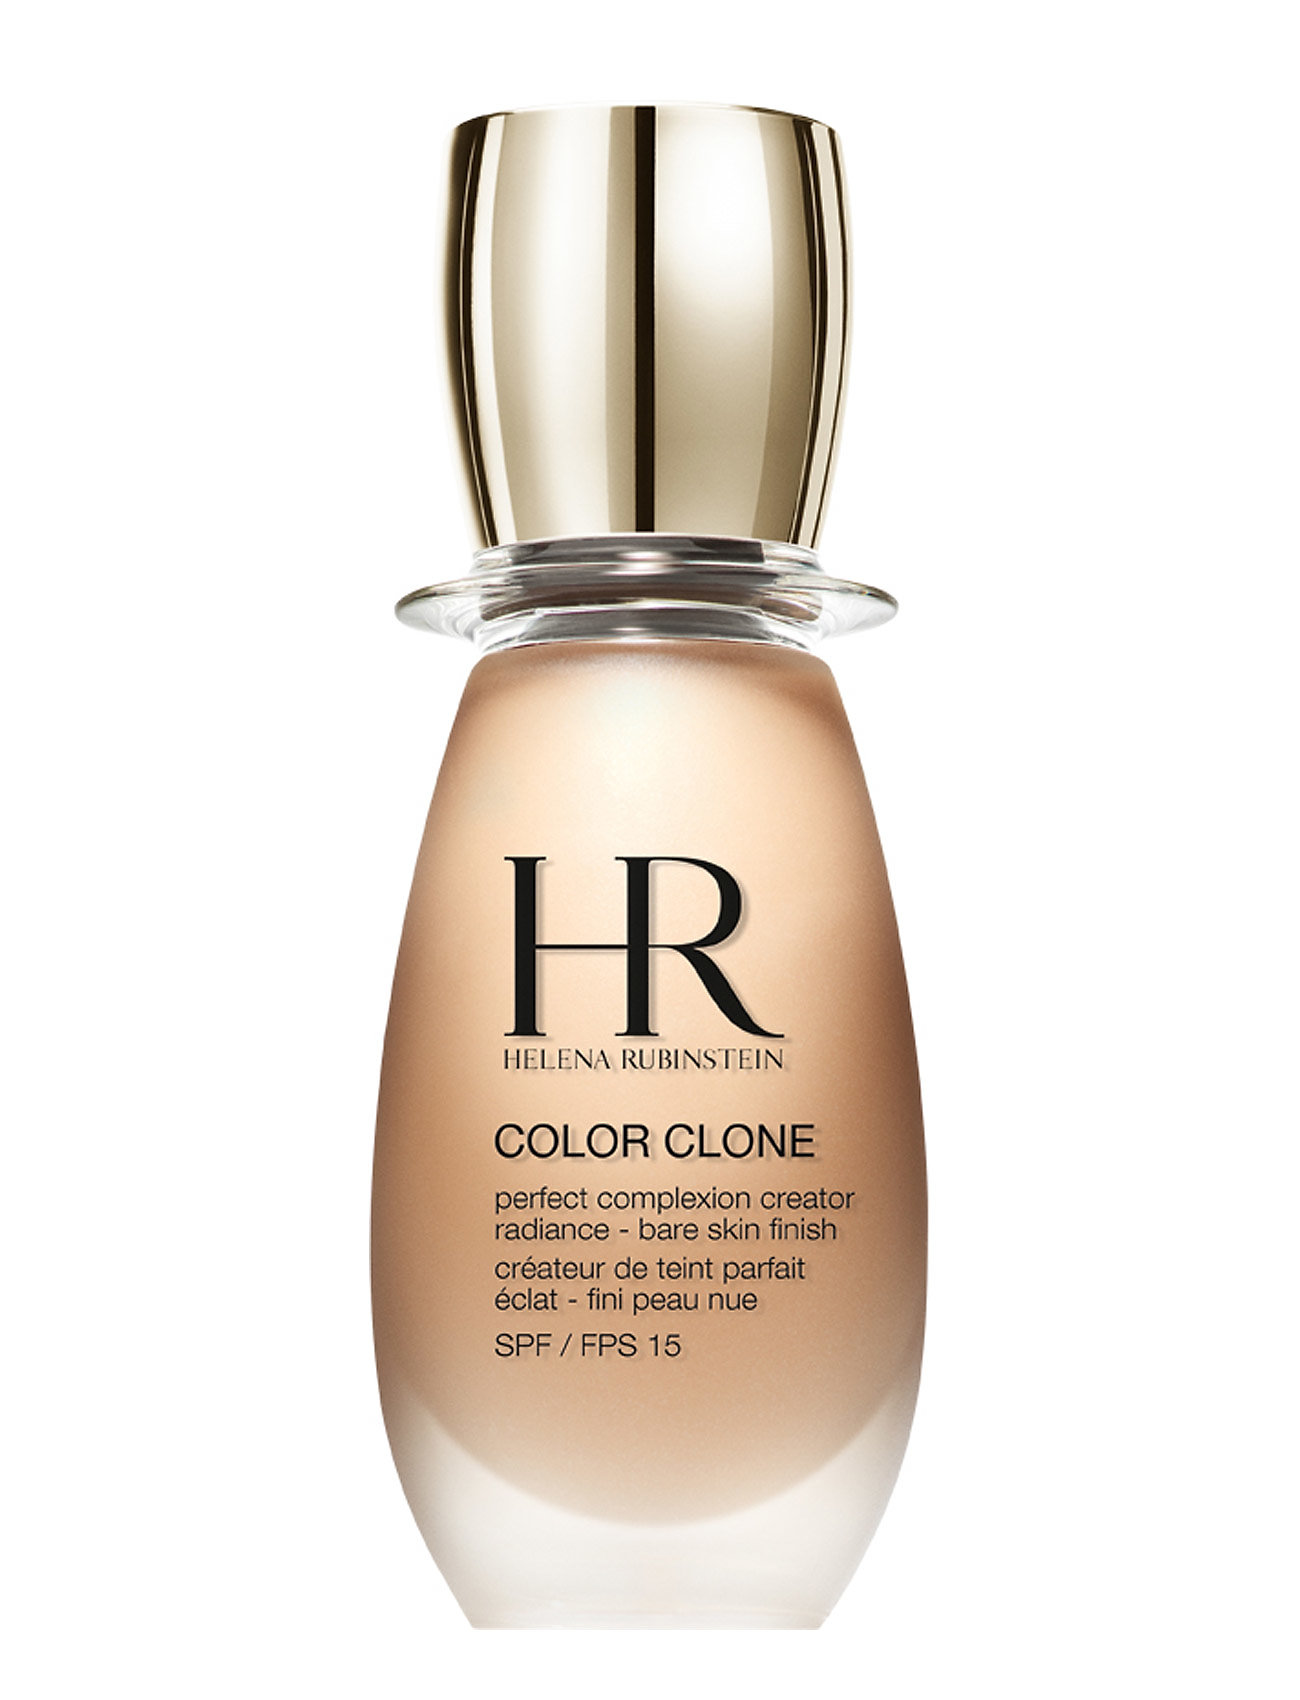 Image of Color Cl Shell 13 Foundation Makeup Helena Rubinstein (3345419549)